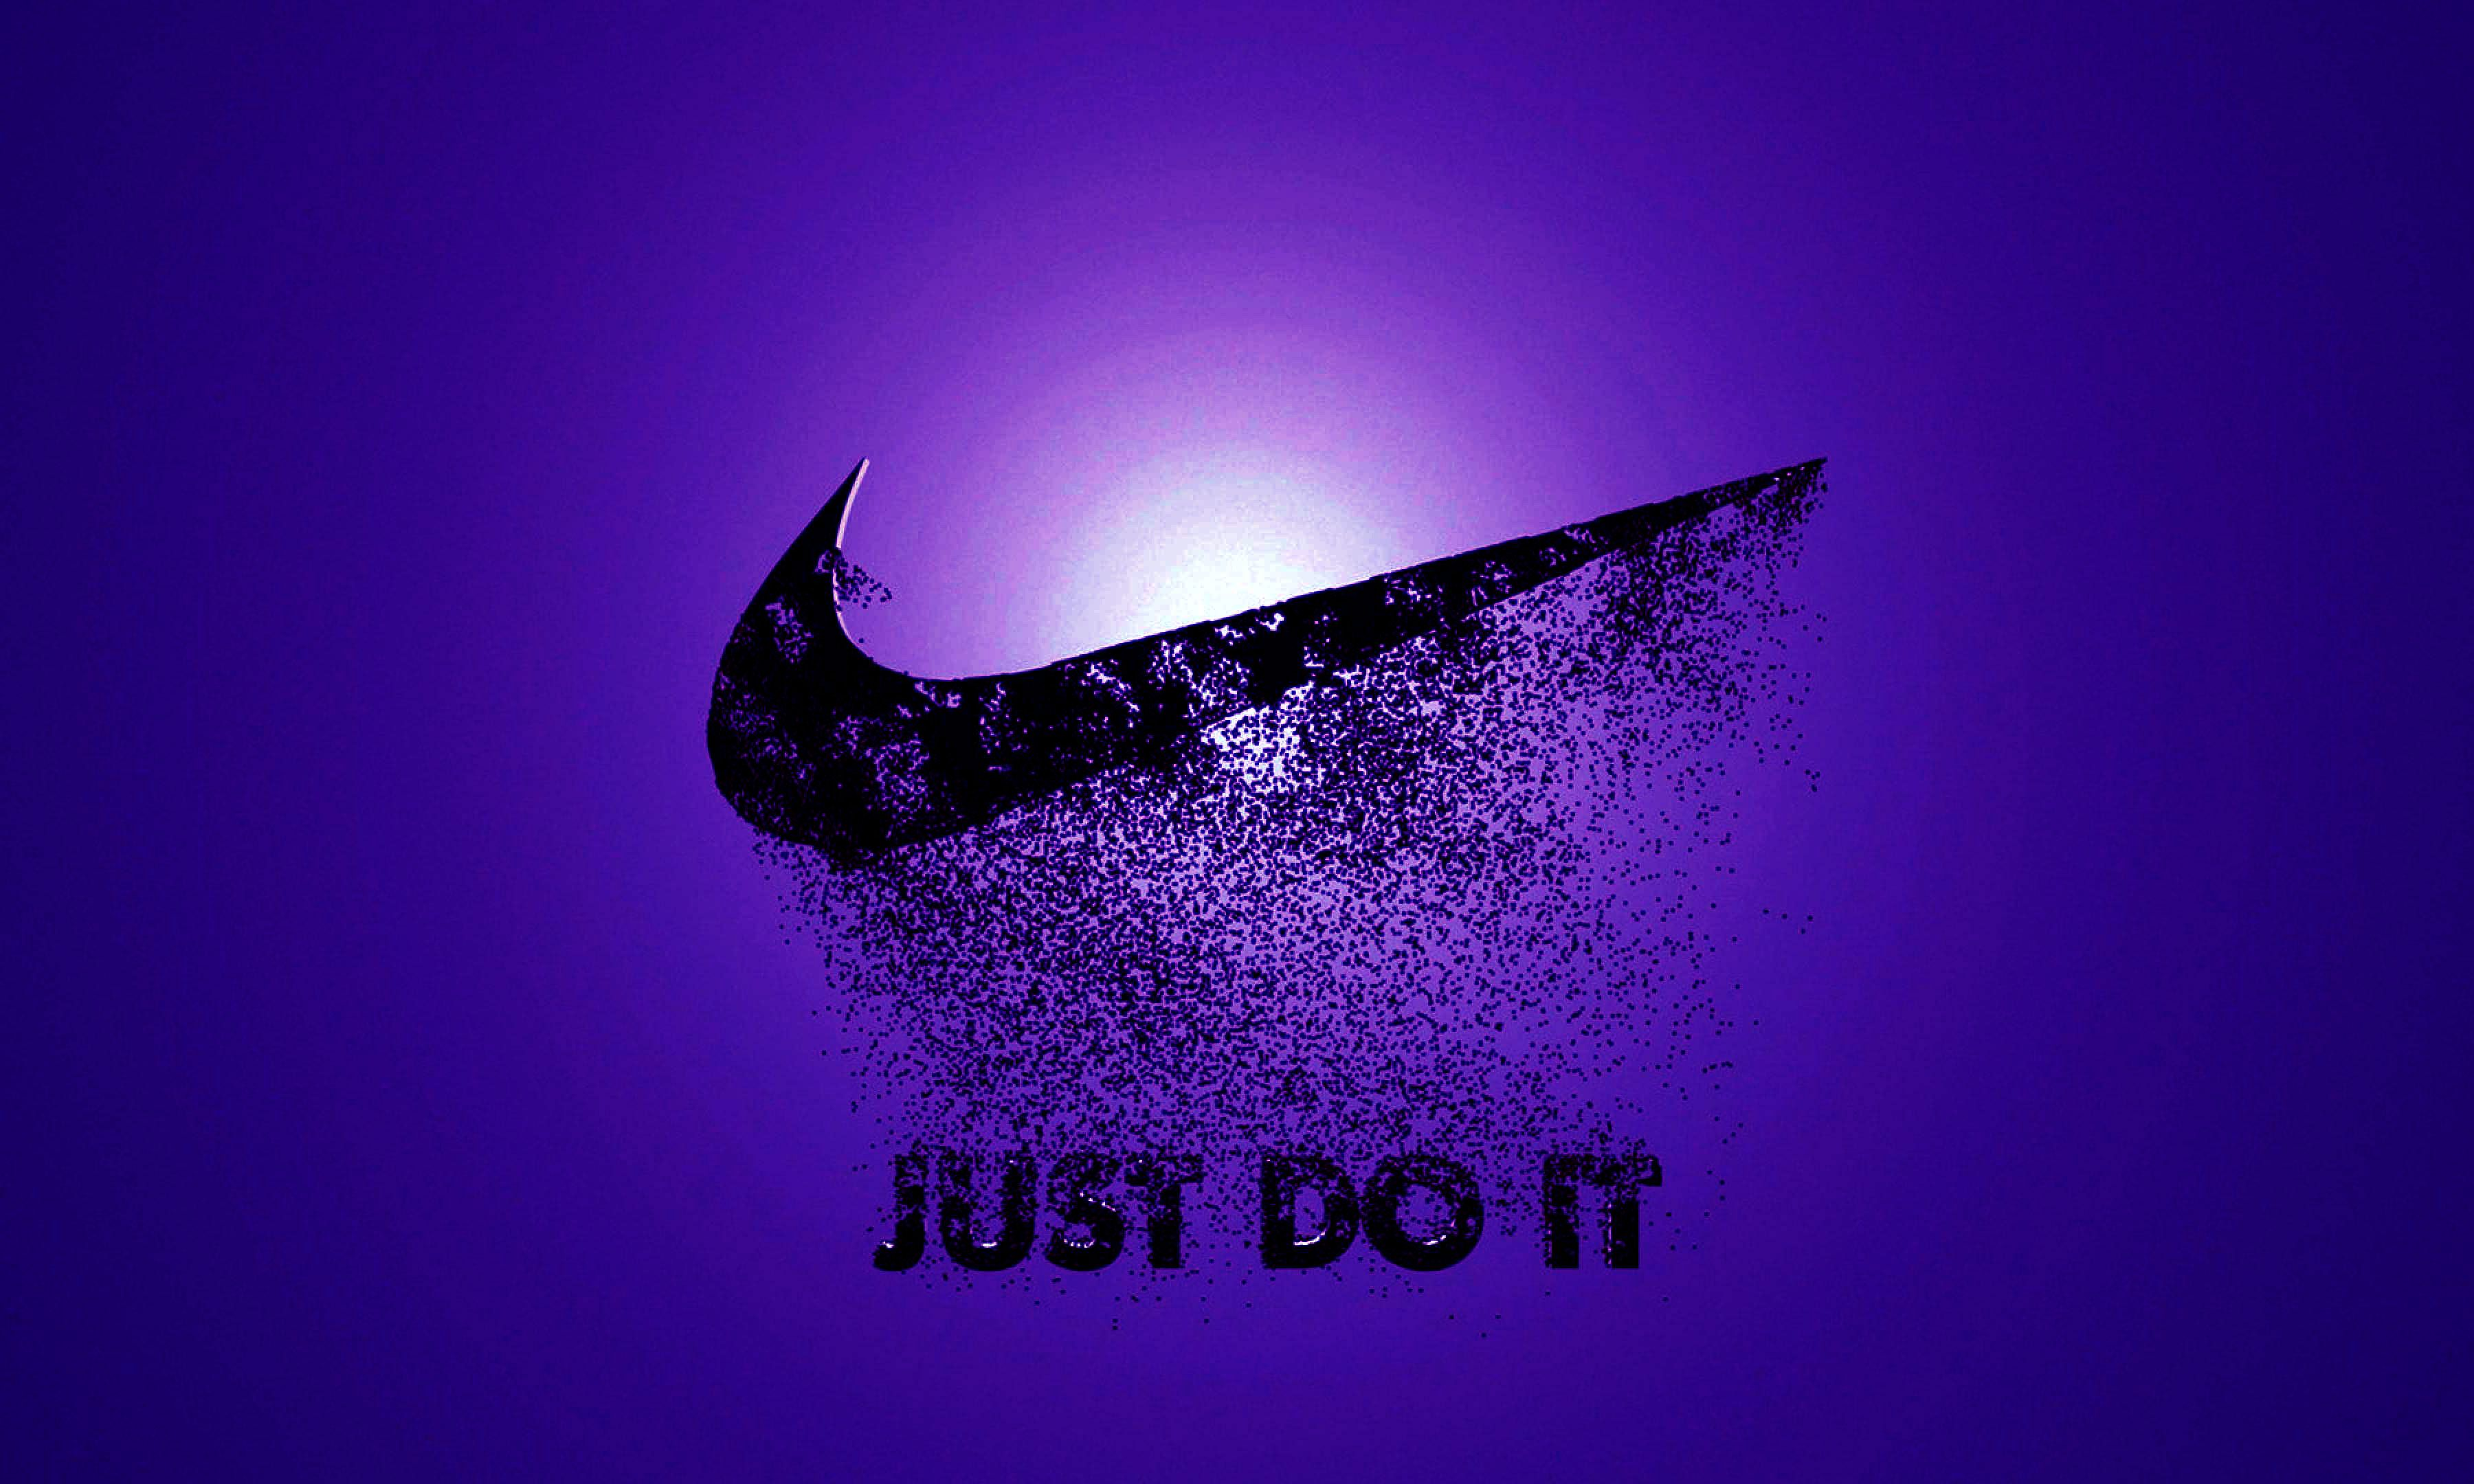 nike background